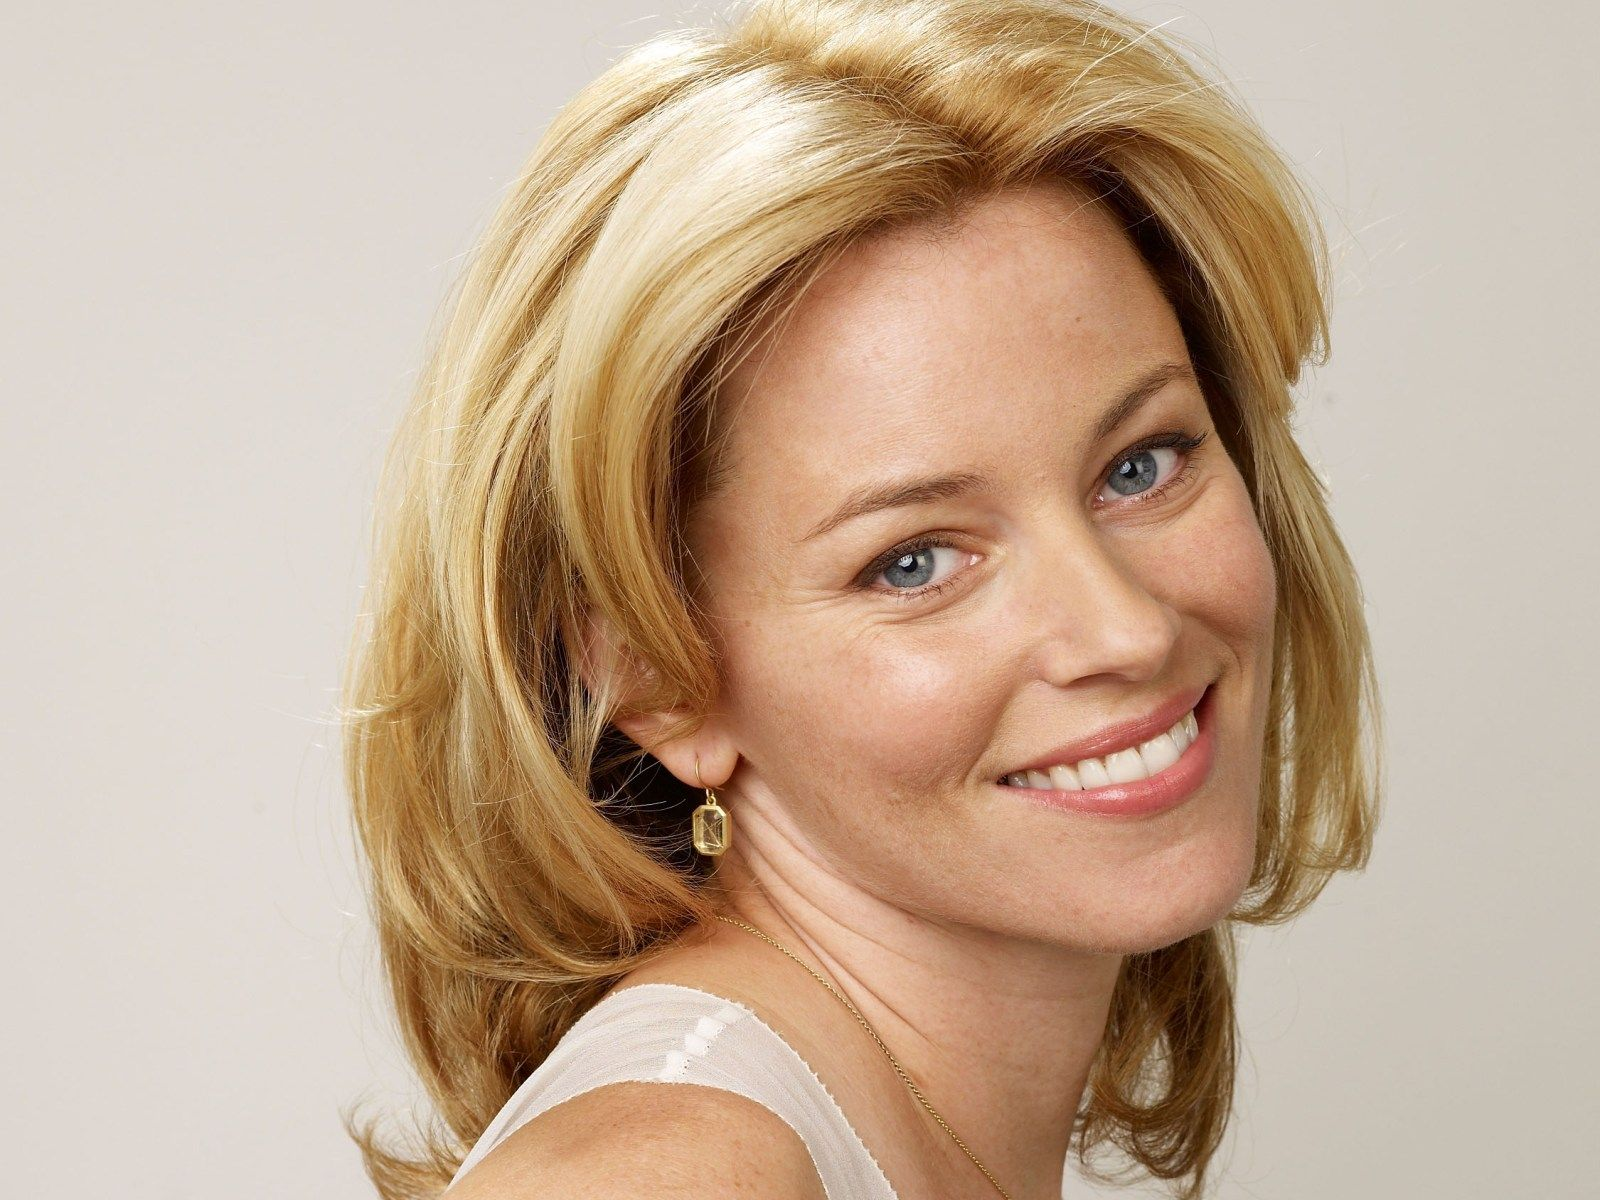 Elizabeth Banks Is An Actress And Director Elizabeth Banks Elizabeth Banks Movies Most Beautiful Eyes